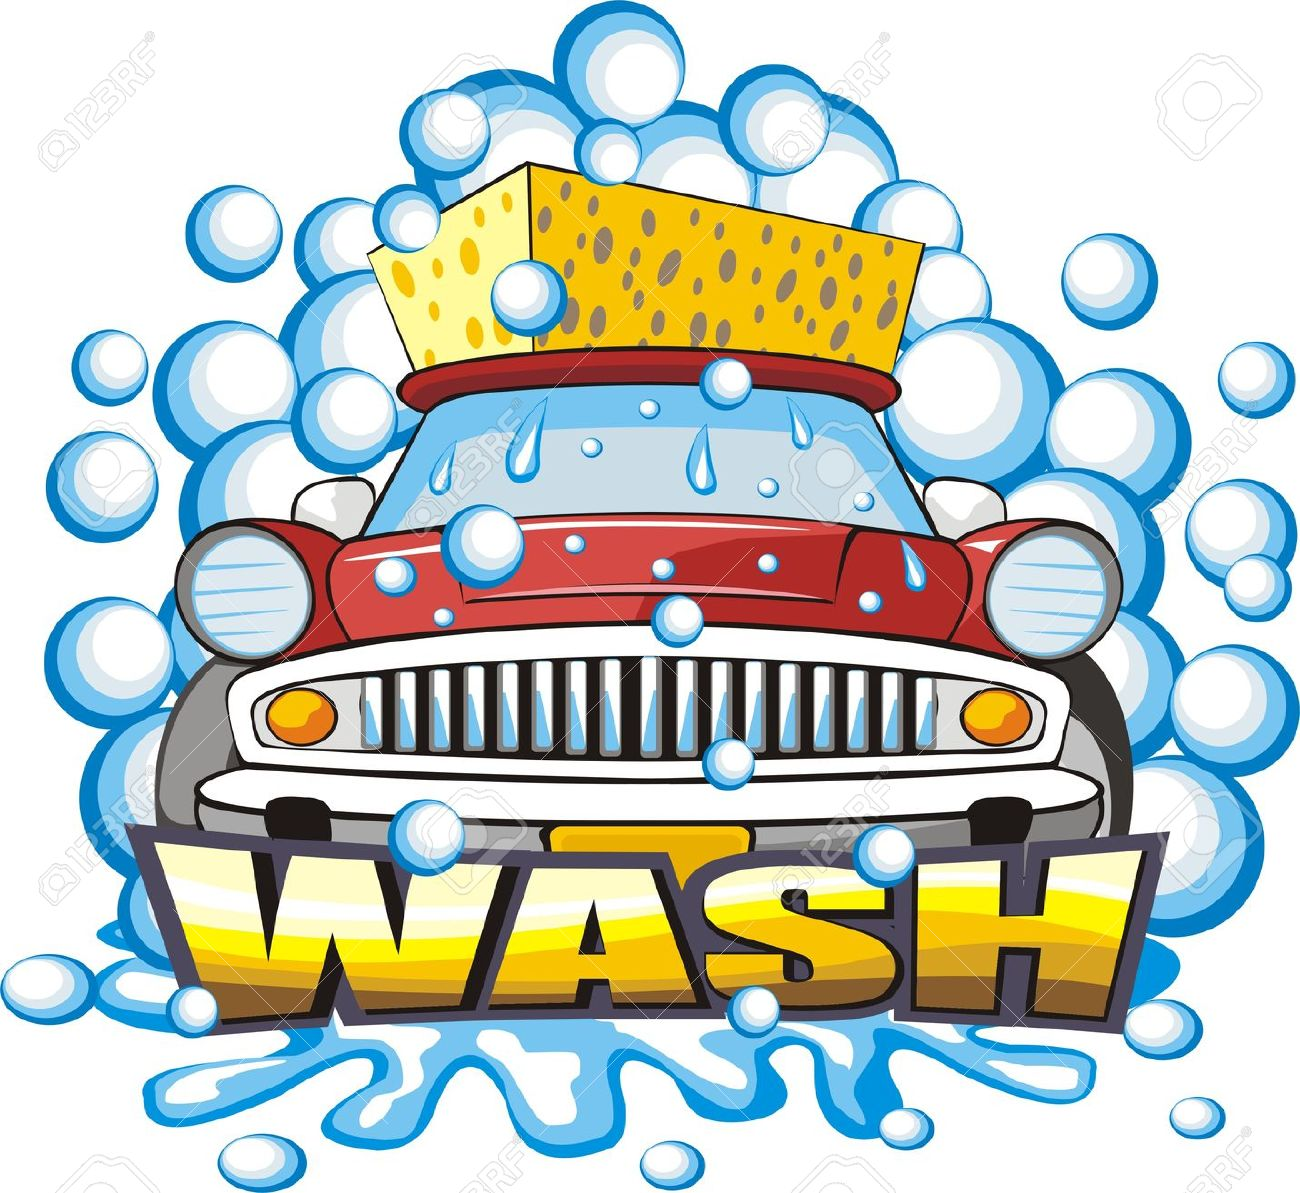 Car Wash Pictures Free Download Best Car Wash Pictures On